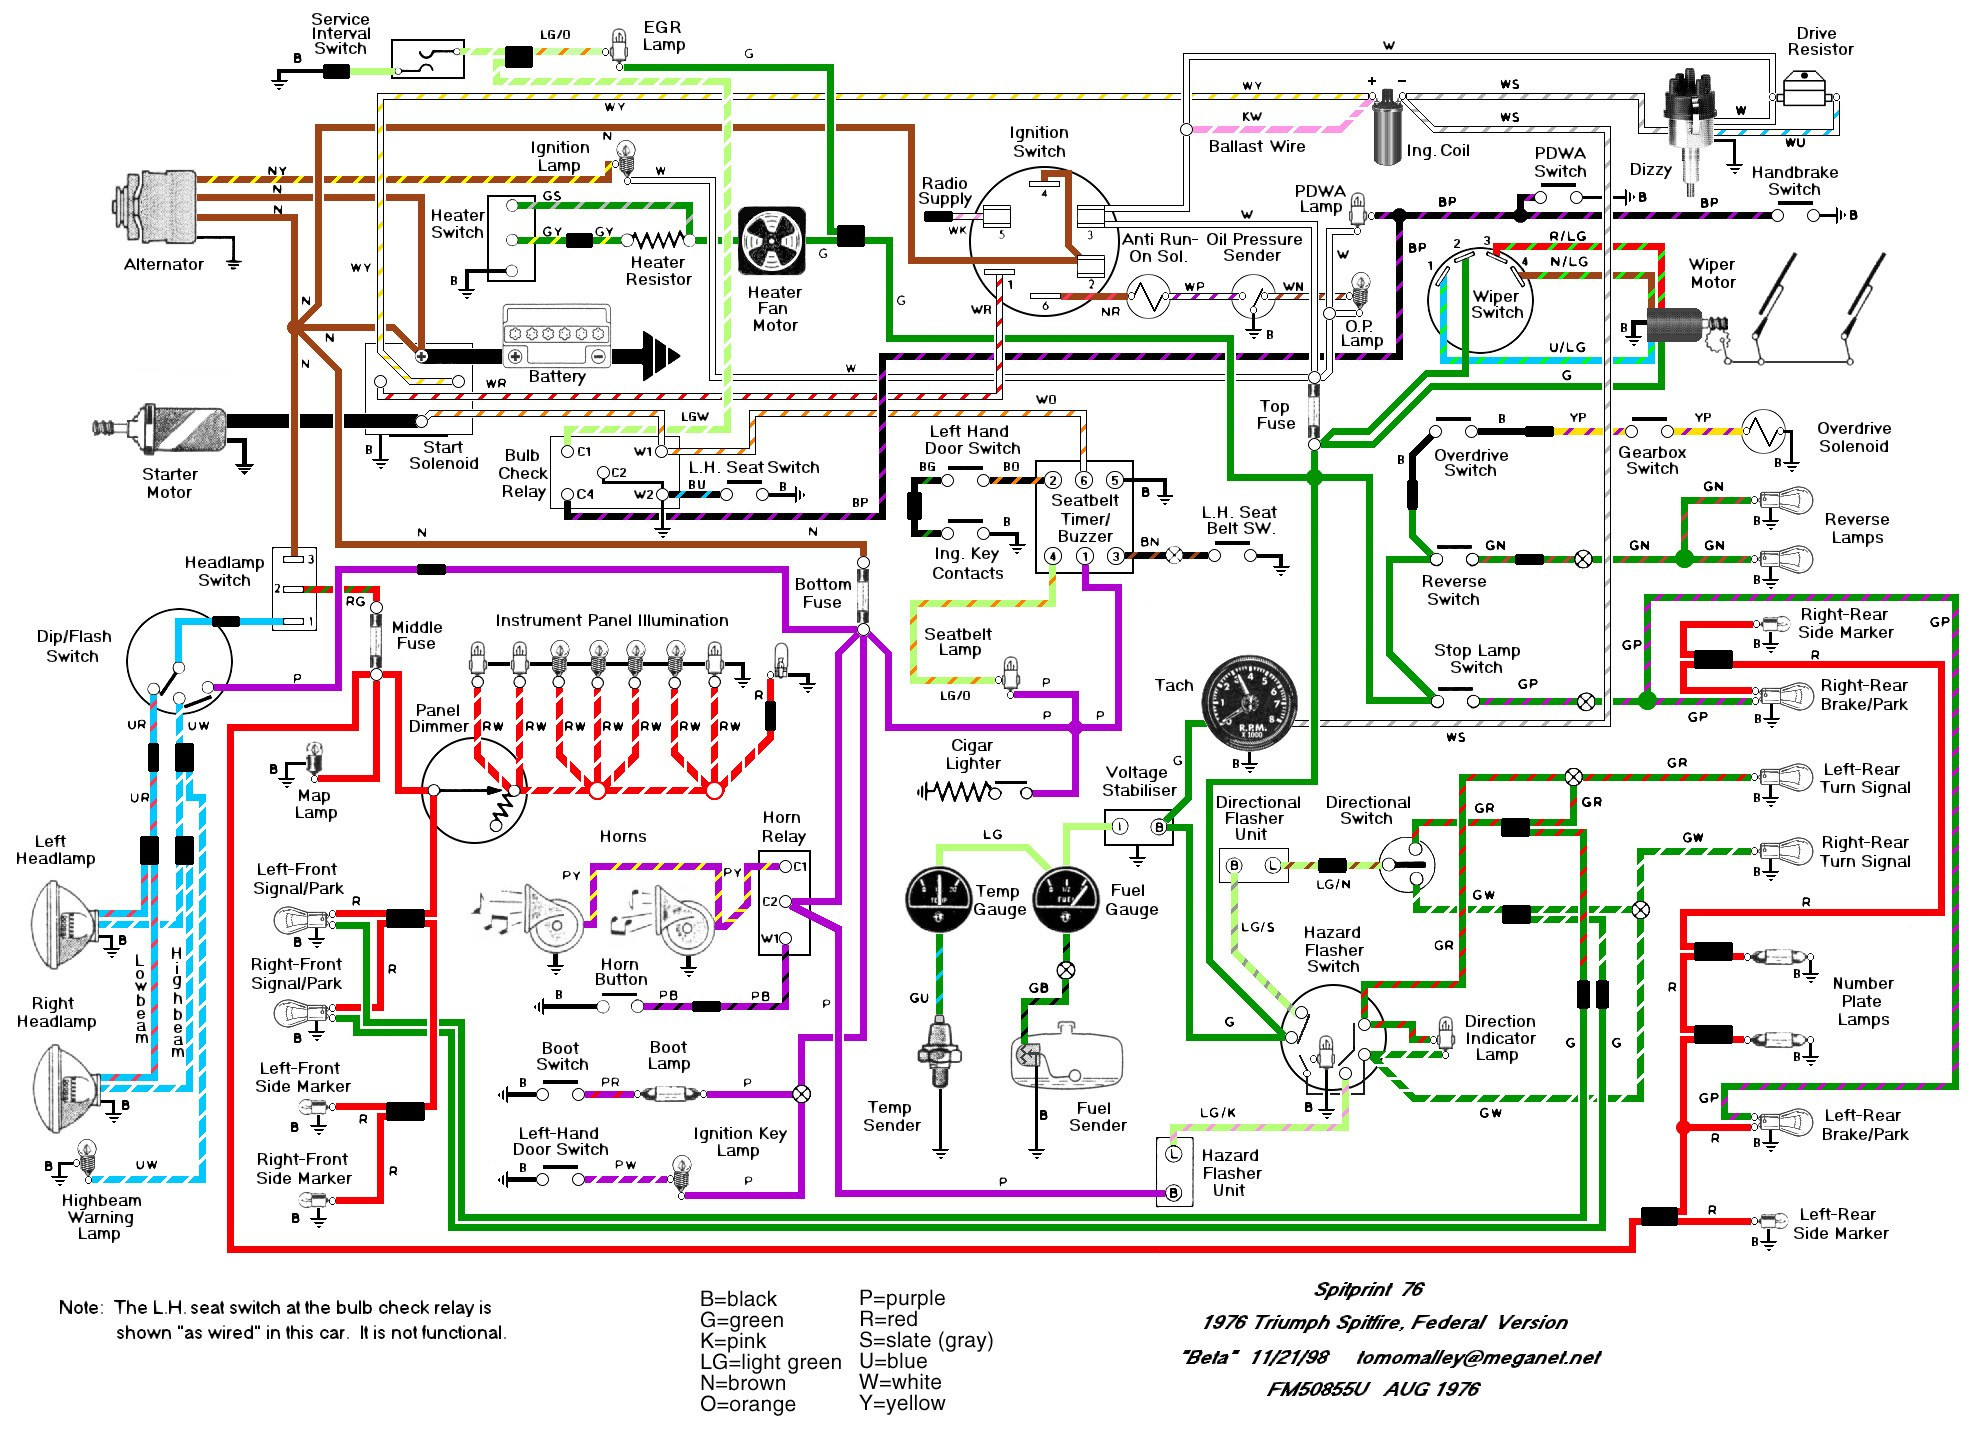 Peterbilt Wiring Diagram Free Sample Download S Series Automotive Tutorial Save Amazing Diagrams